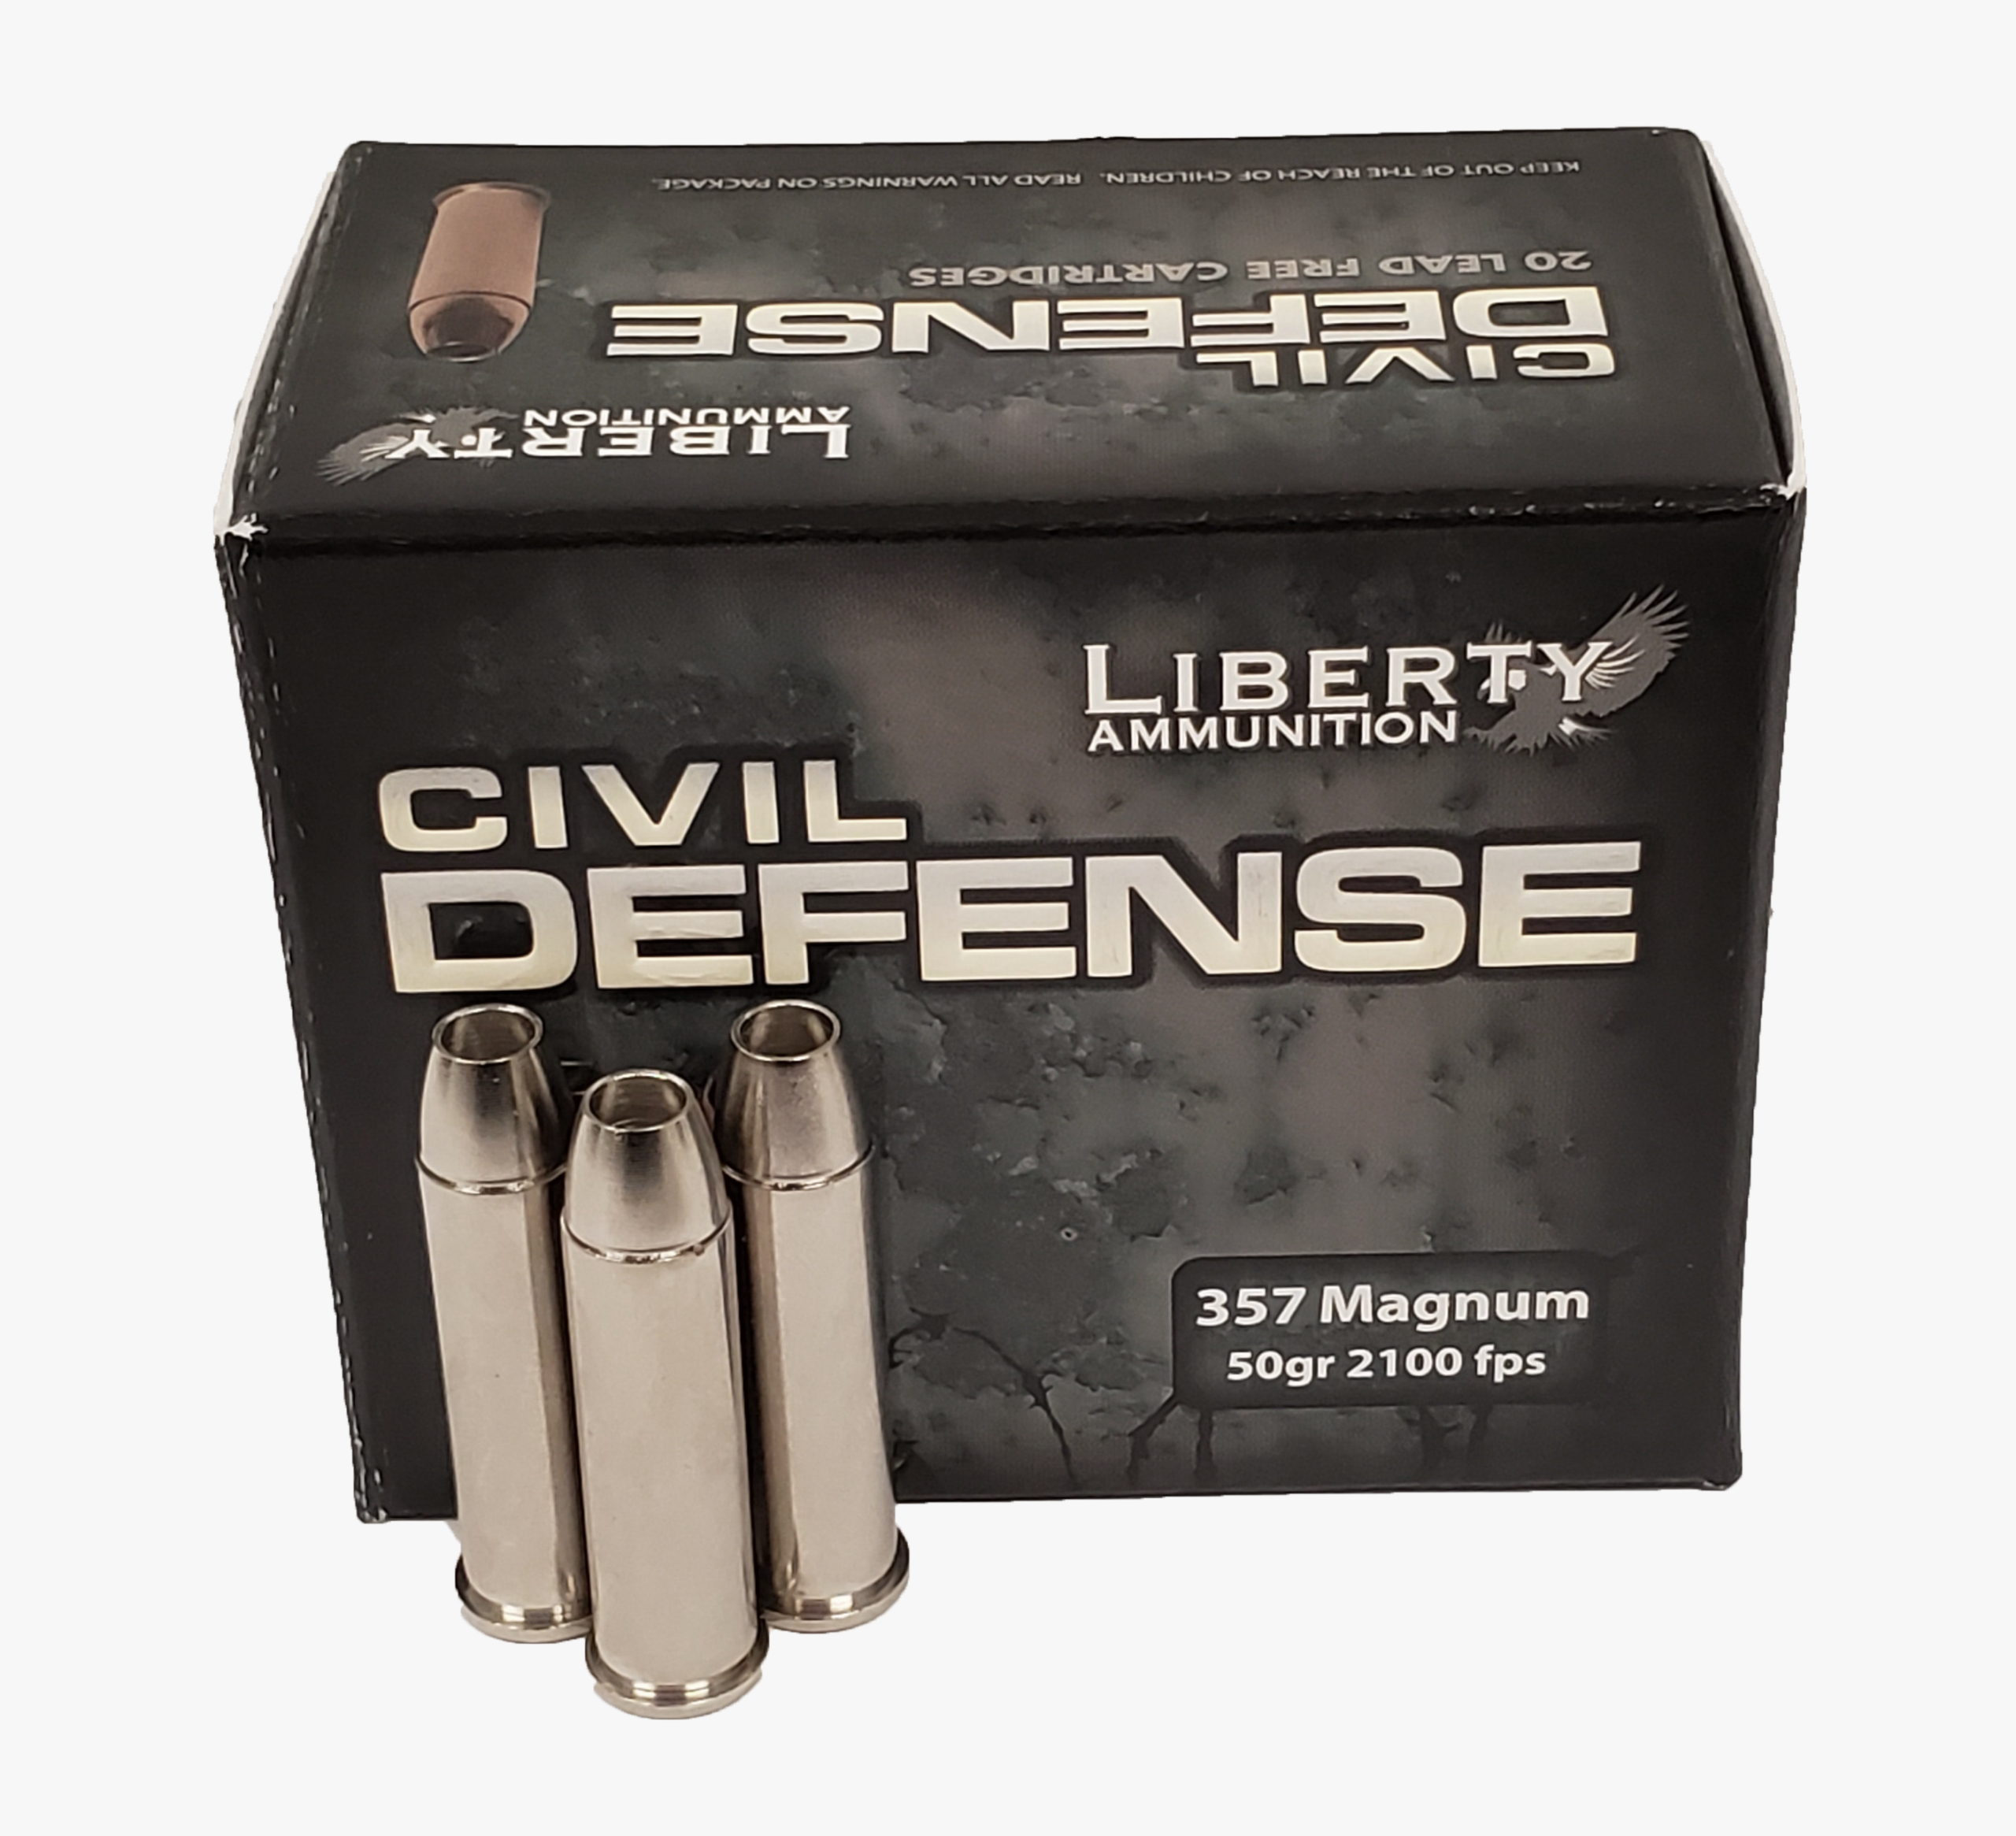 Civil Defense 357 Magnum - Liberty Ammunition - Self-Defense Rounds